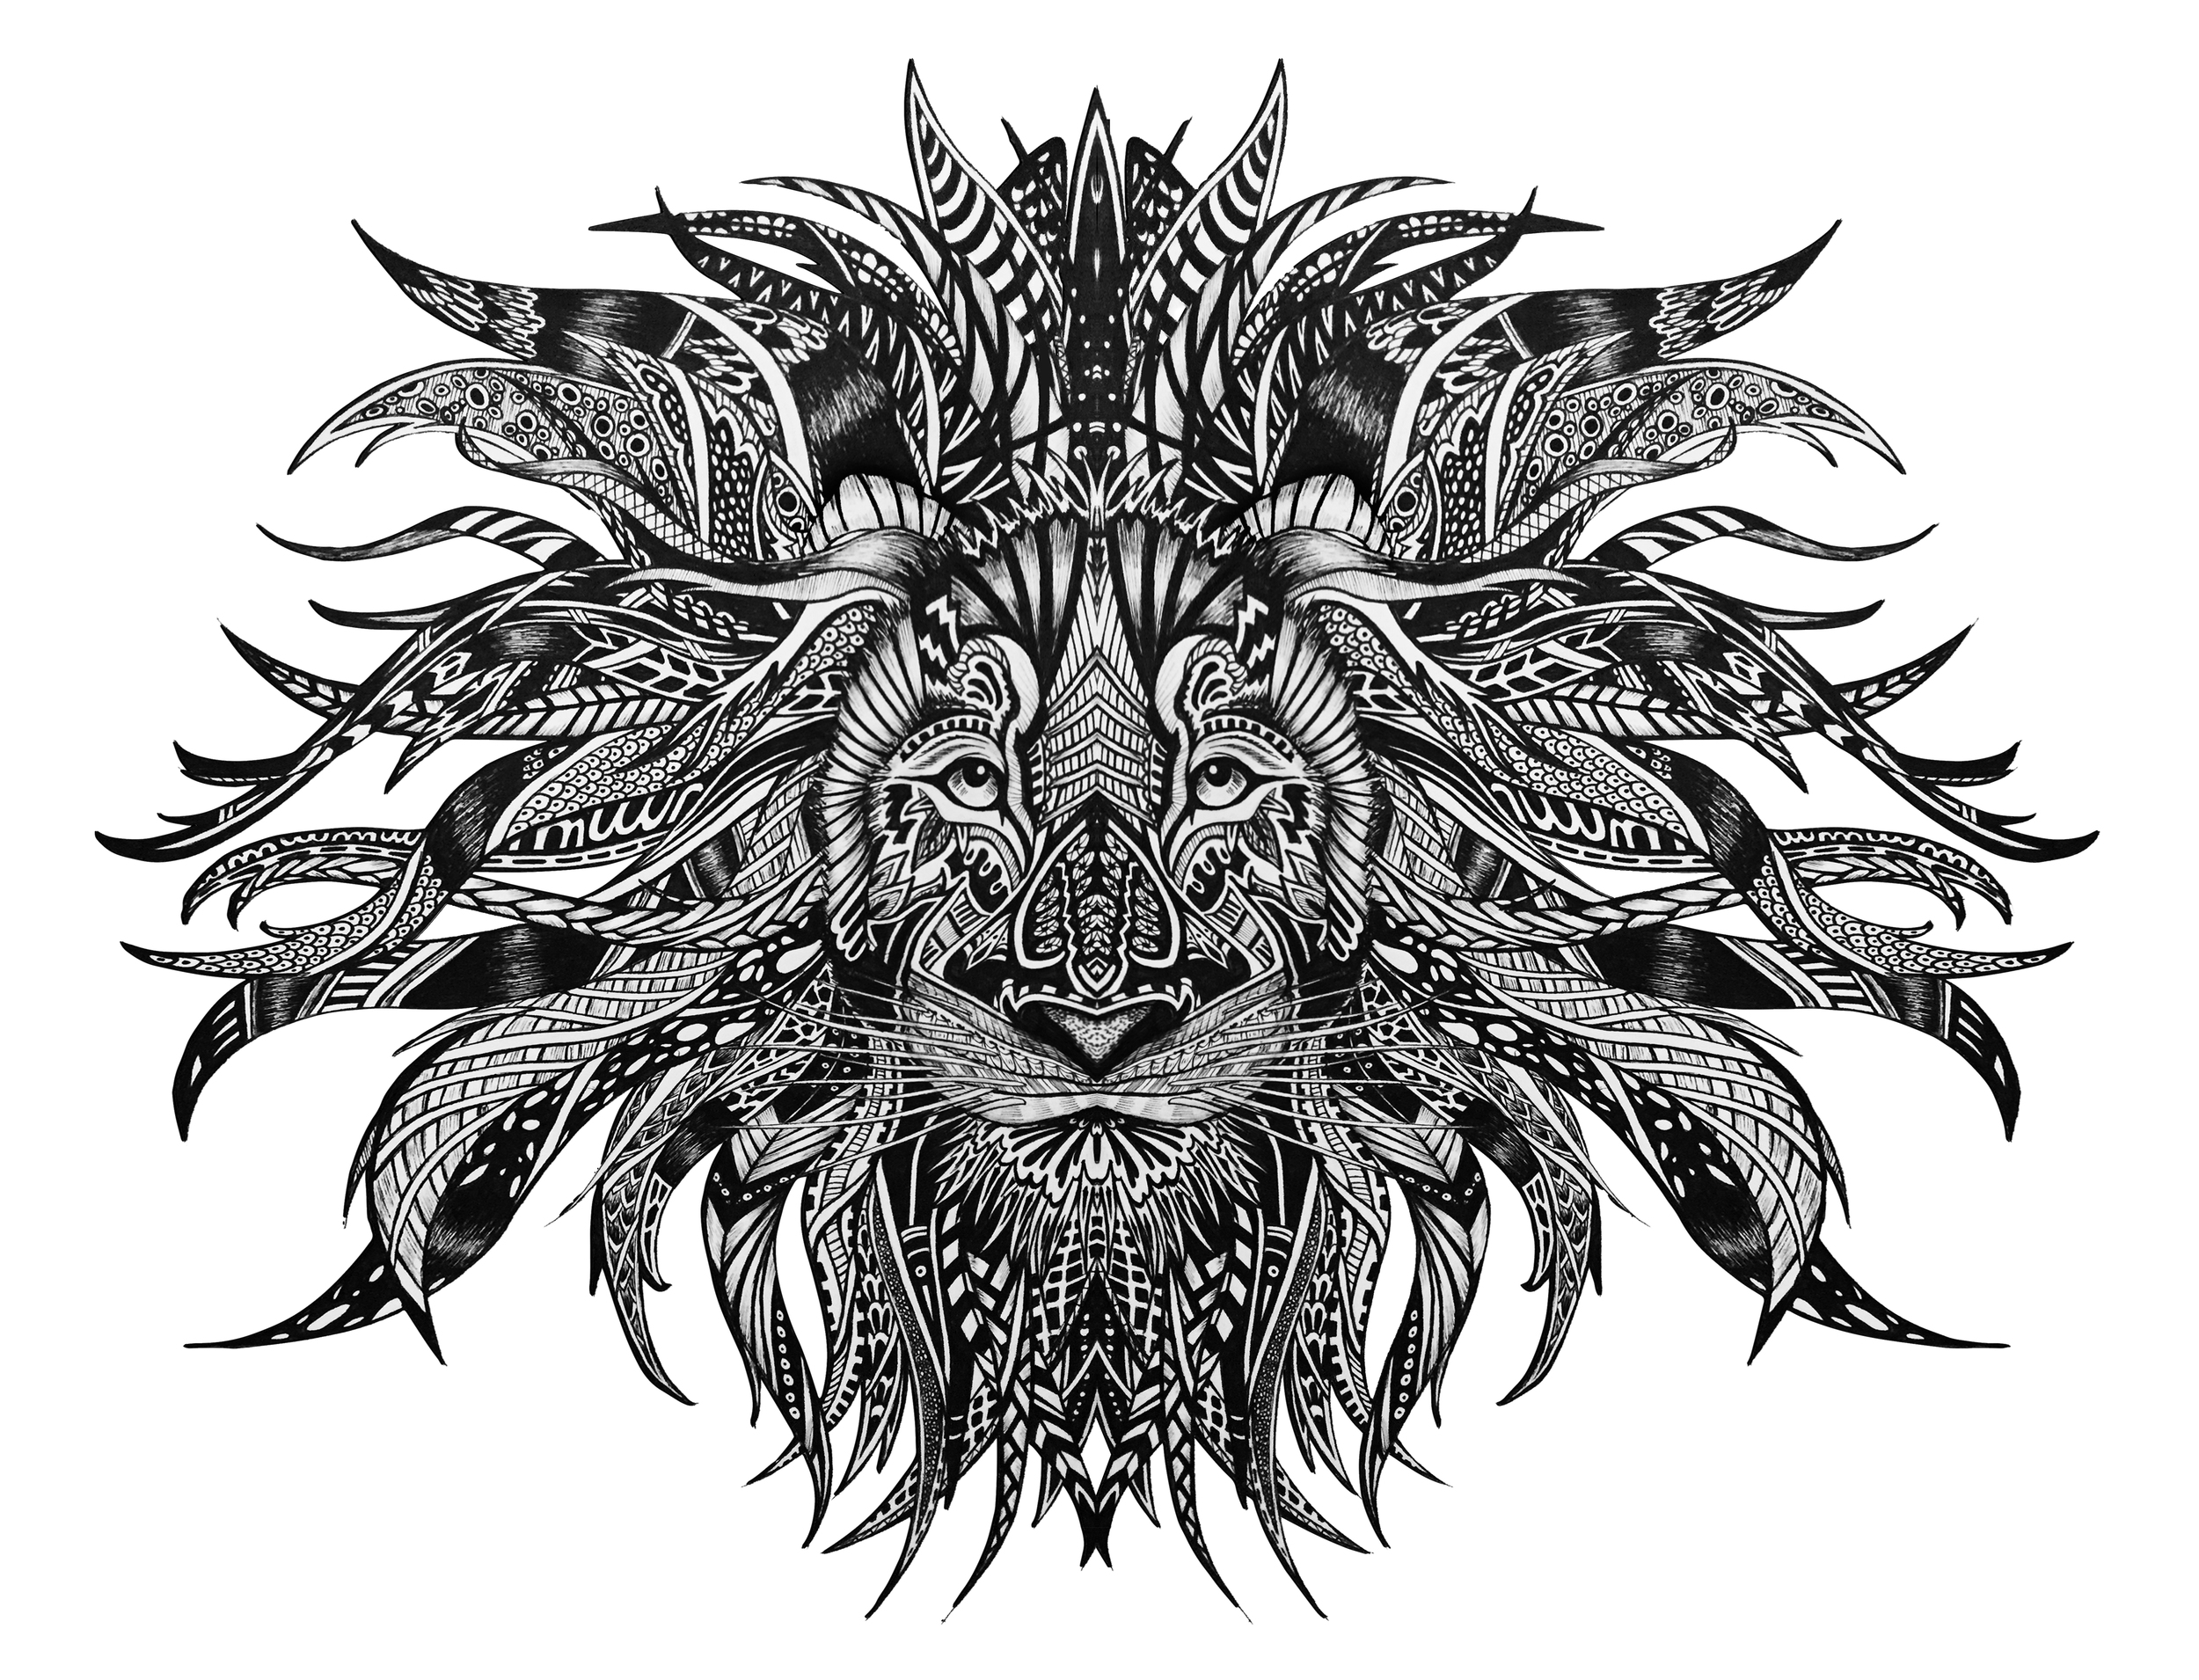 English Lion; Inspired by the Lake District and London Architecture